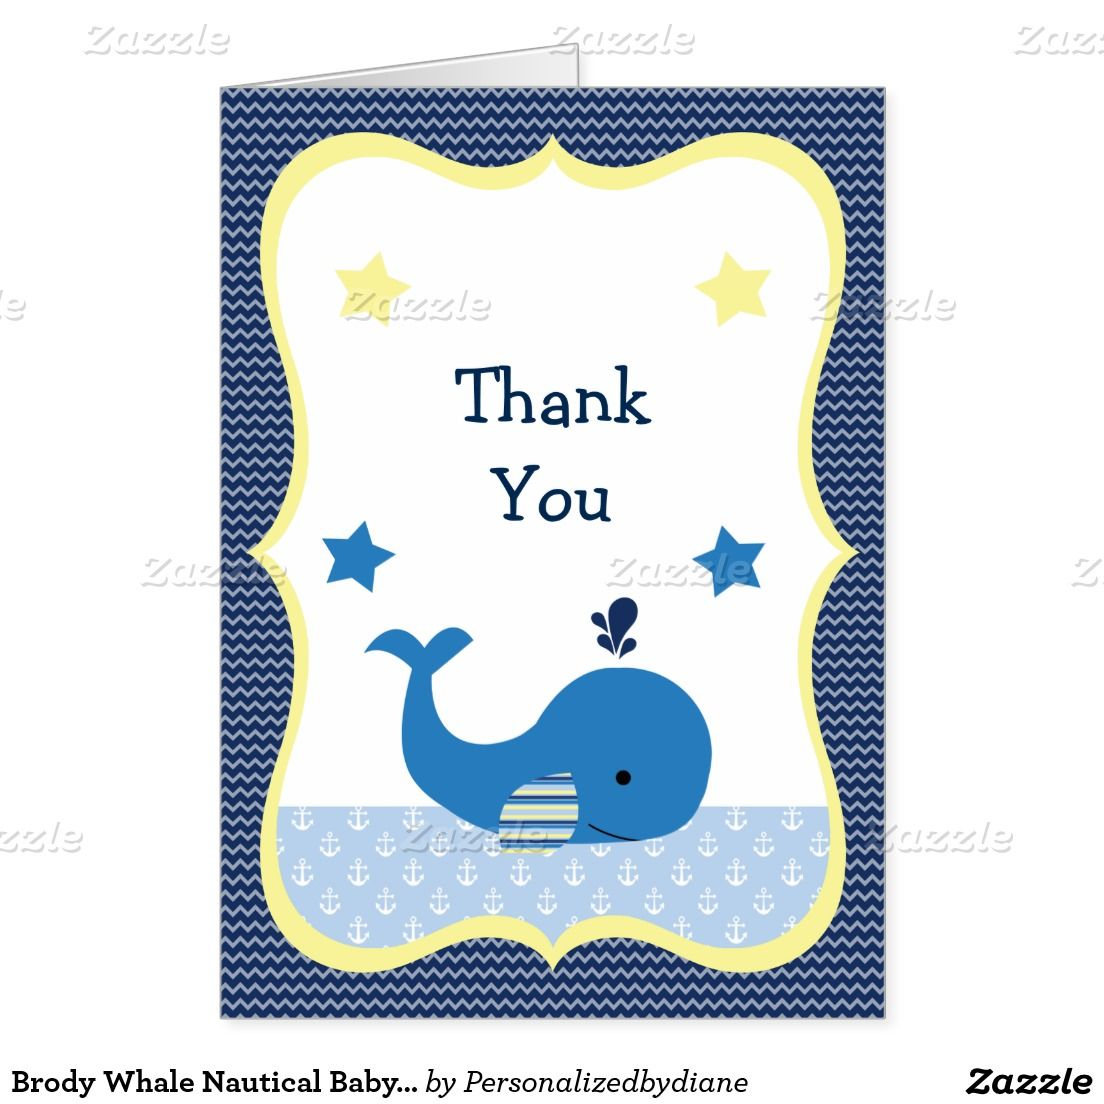 Full Size of Baby Shower:72+ Rousing Baby Shower Thank You Cards Picture Ideas Baby Shower Thank You Cards Brody Whale Nautical Baby Shower Thank You Card